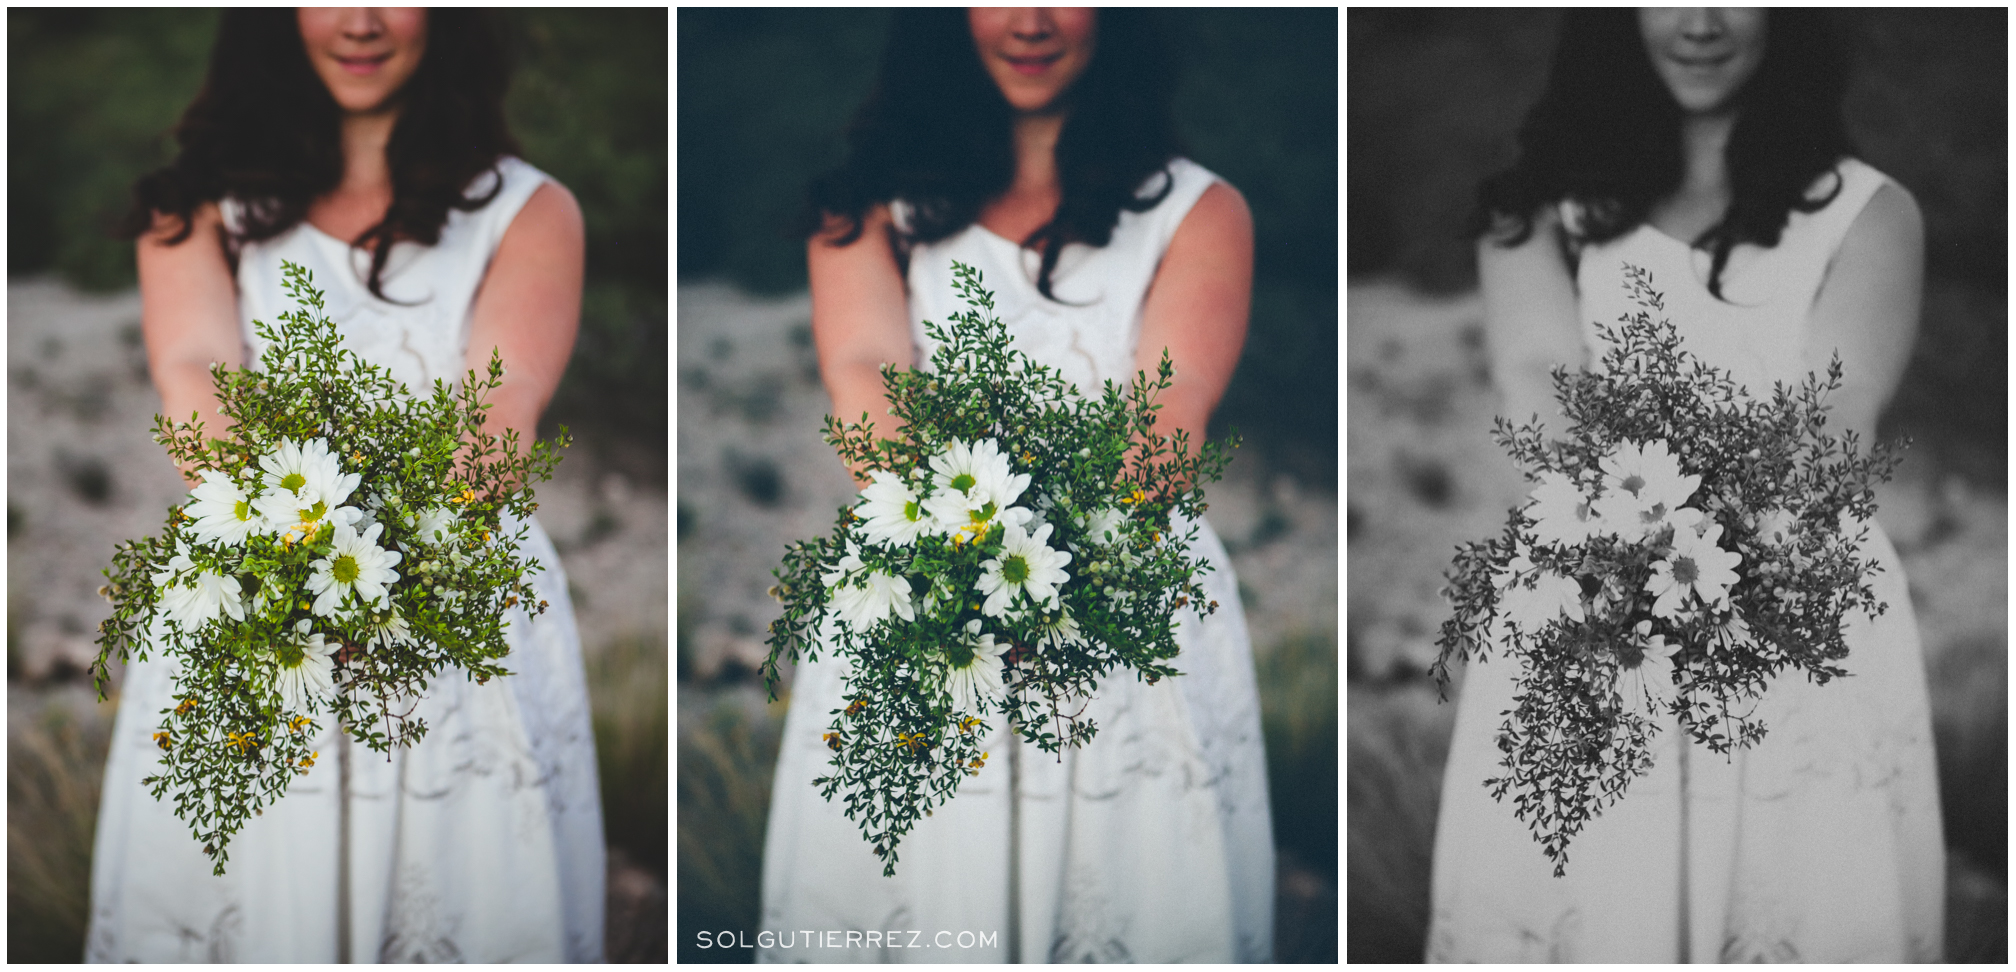 Laura shows off her Tucson desert bouquet // editing sample: original, creative color, and creative black & white (click to enlarge)